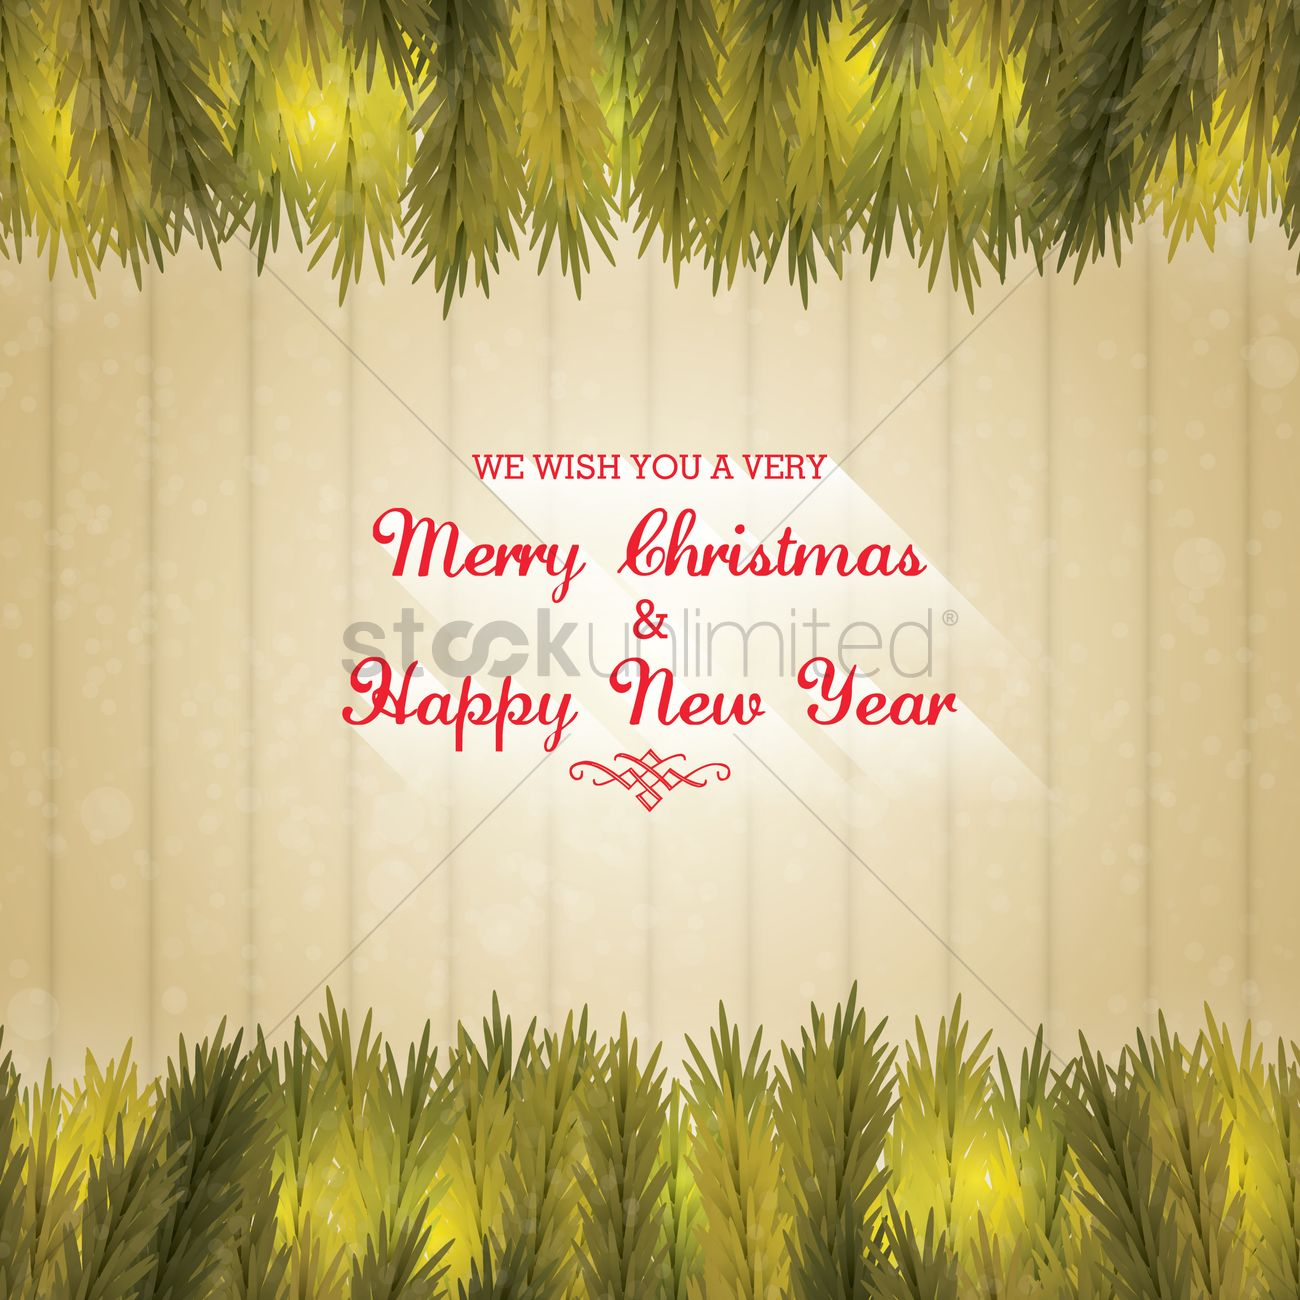 Christmas And New Year Greetings Vector Image 1626369 Stockunlimited